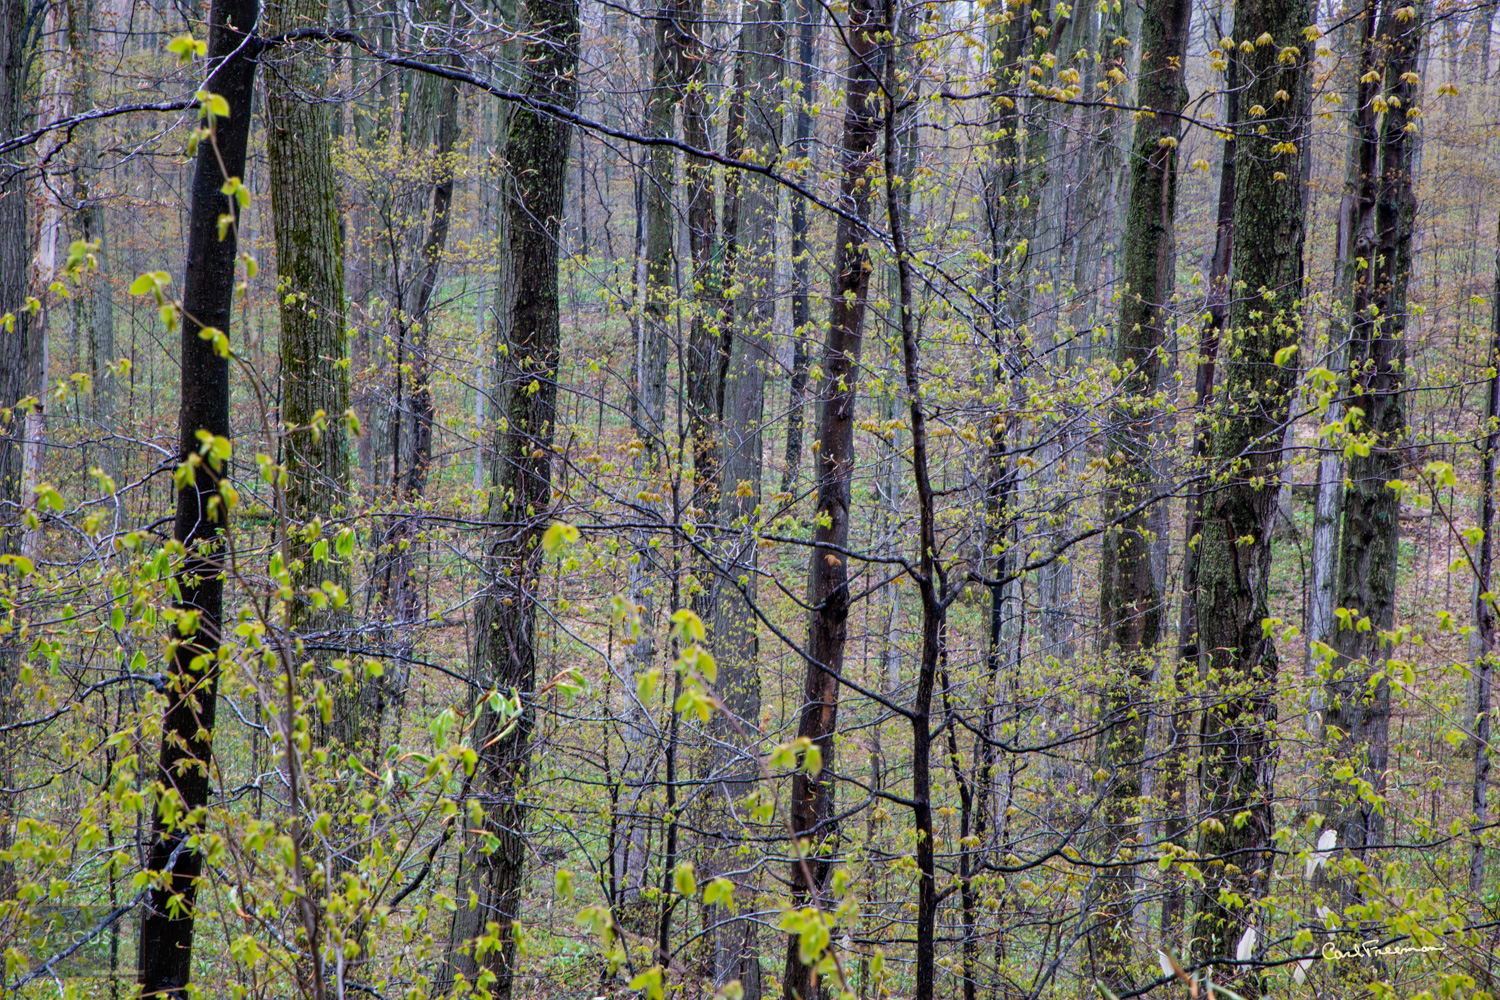 Photo © Carl Freeman Wet trunks after a spring rain and new green leaves are just as pleasing as fall colors. This image was...